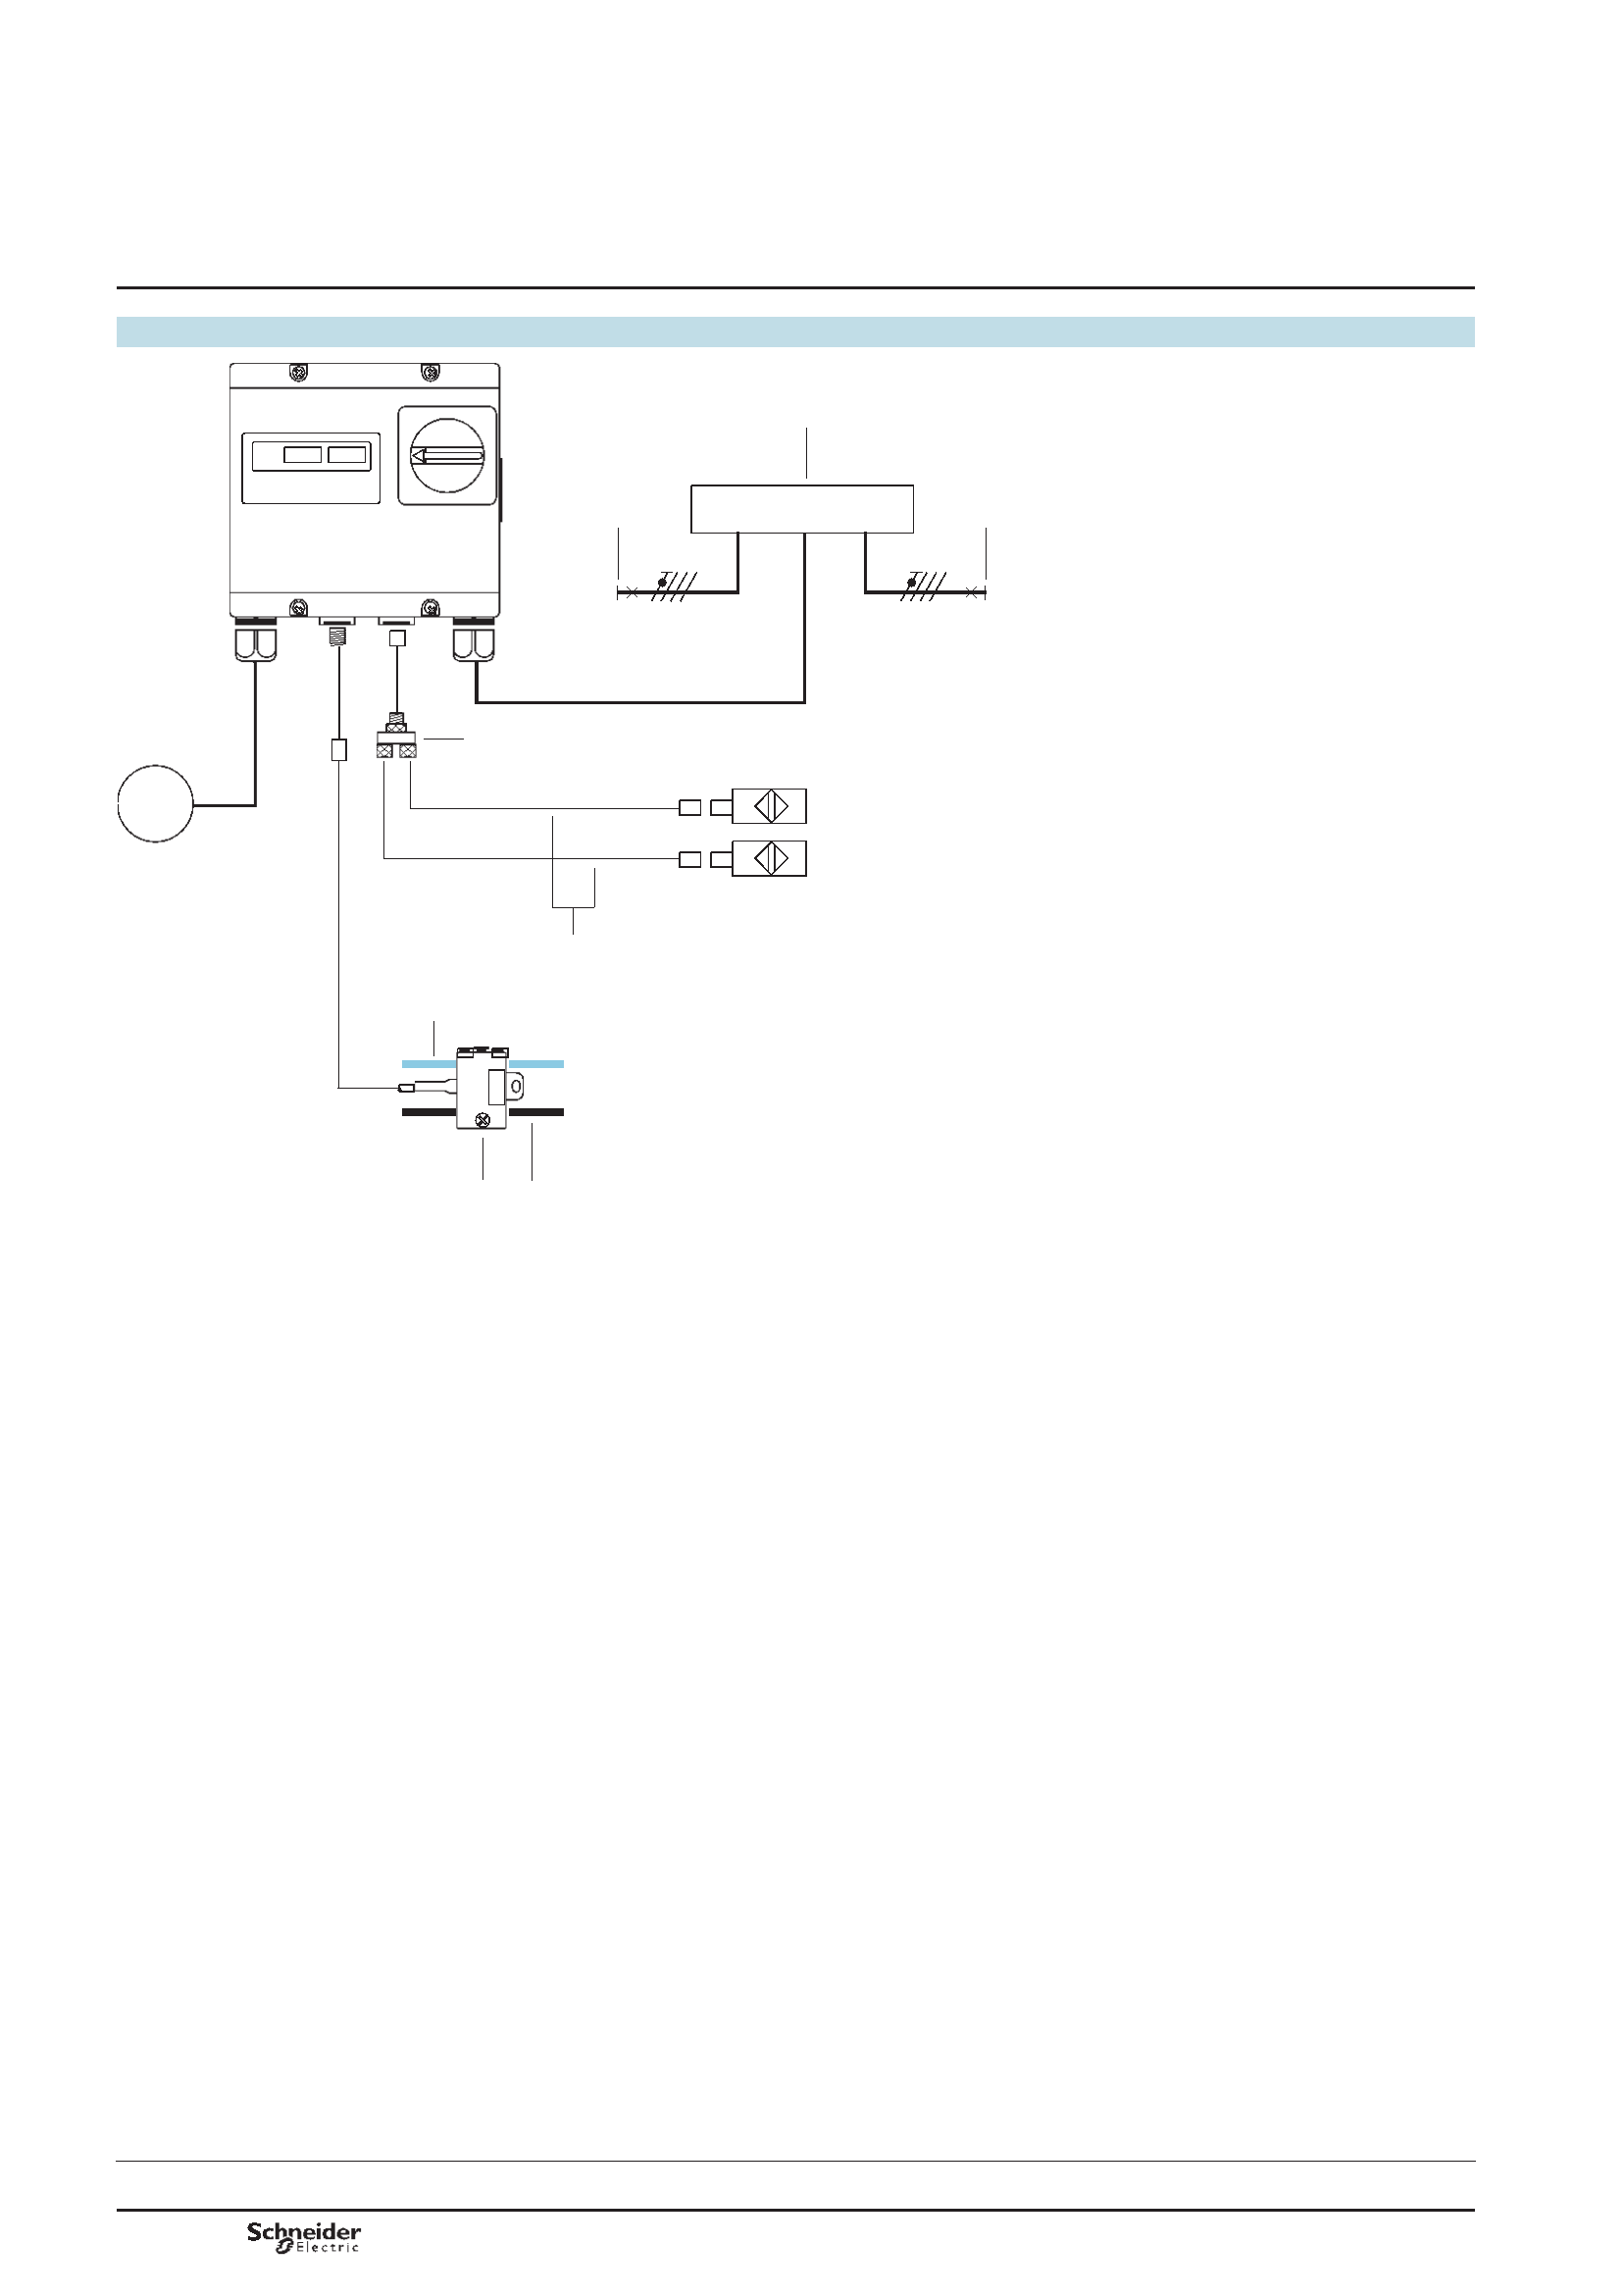 Tesys Catalogue 2016 Motor Control And Protection Components Icu Kw Wiring Diagram Connections